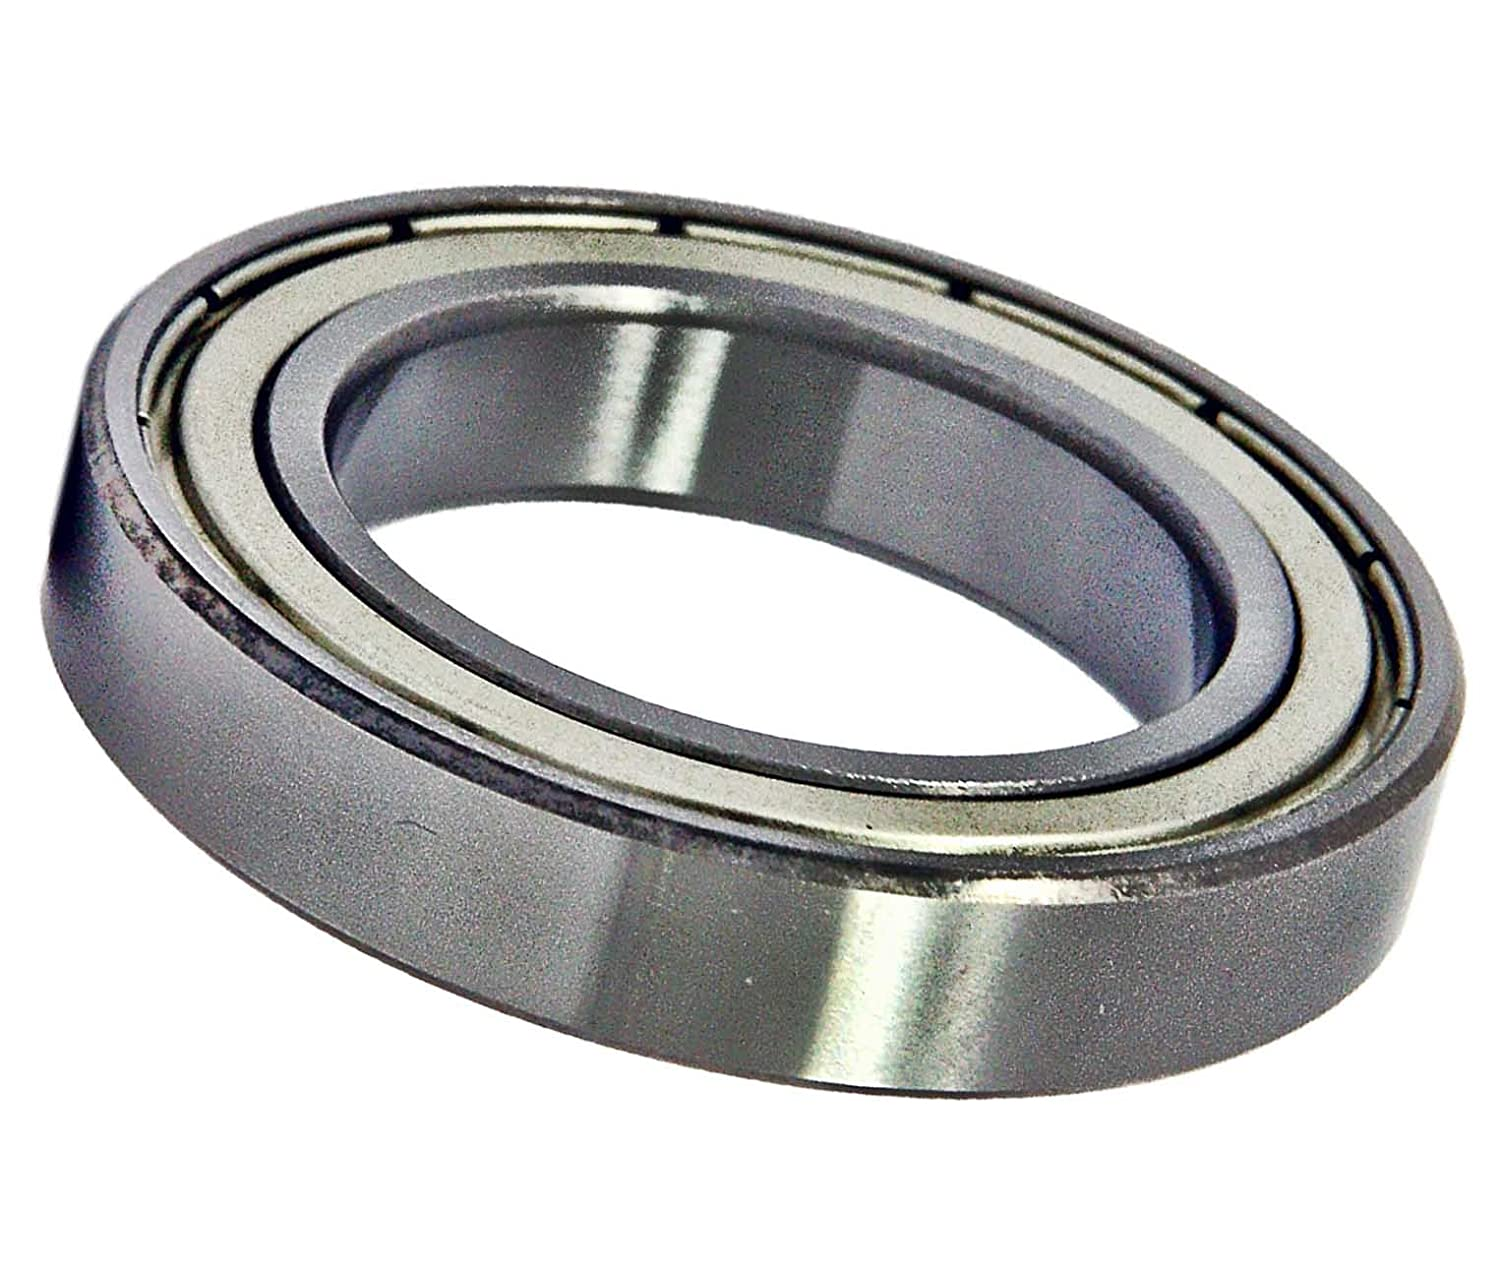 6206-2RZ Radial Ball Bearing Double Shielded Bore Dia 30mm OD 62mm Width 16mm